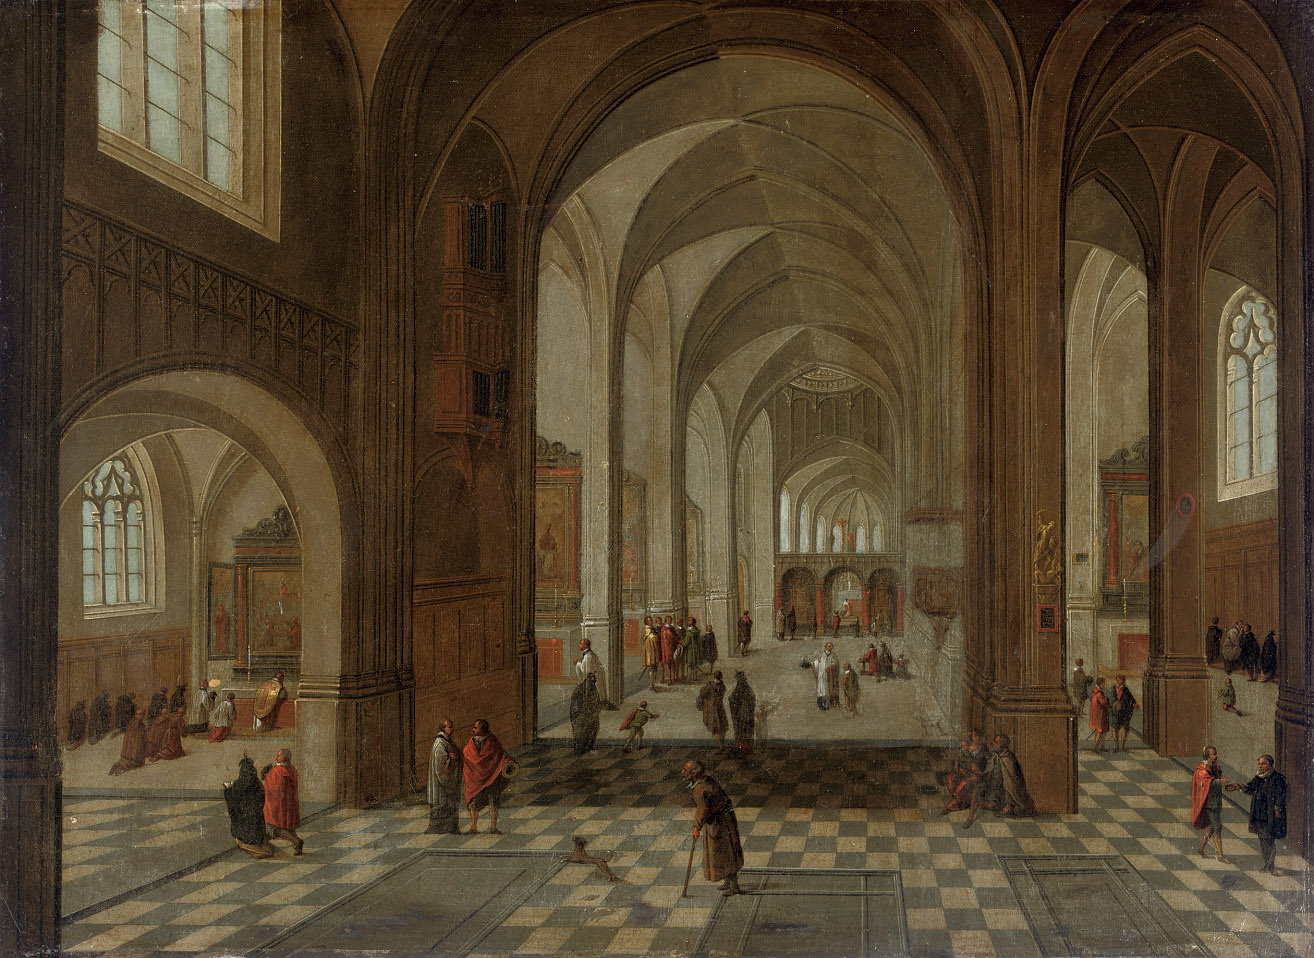 An interior of a Gothic church with elegant figures conversing